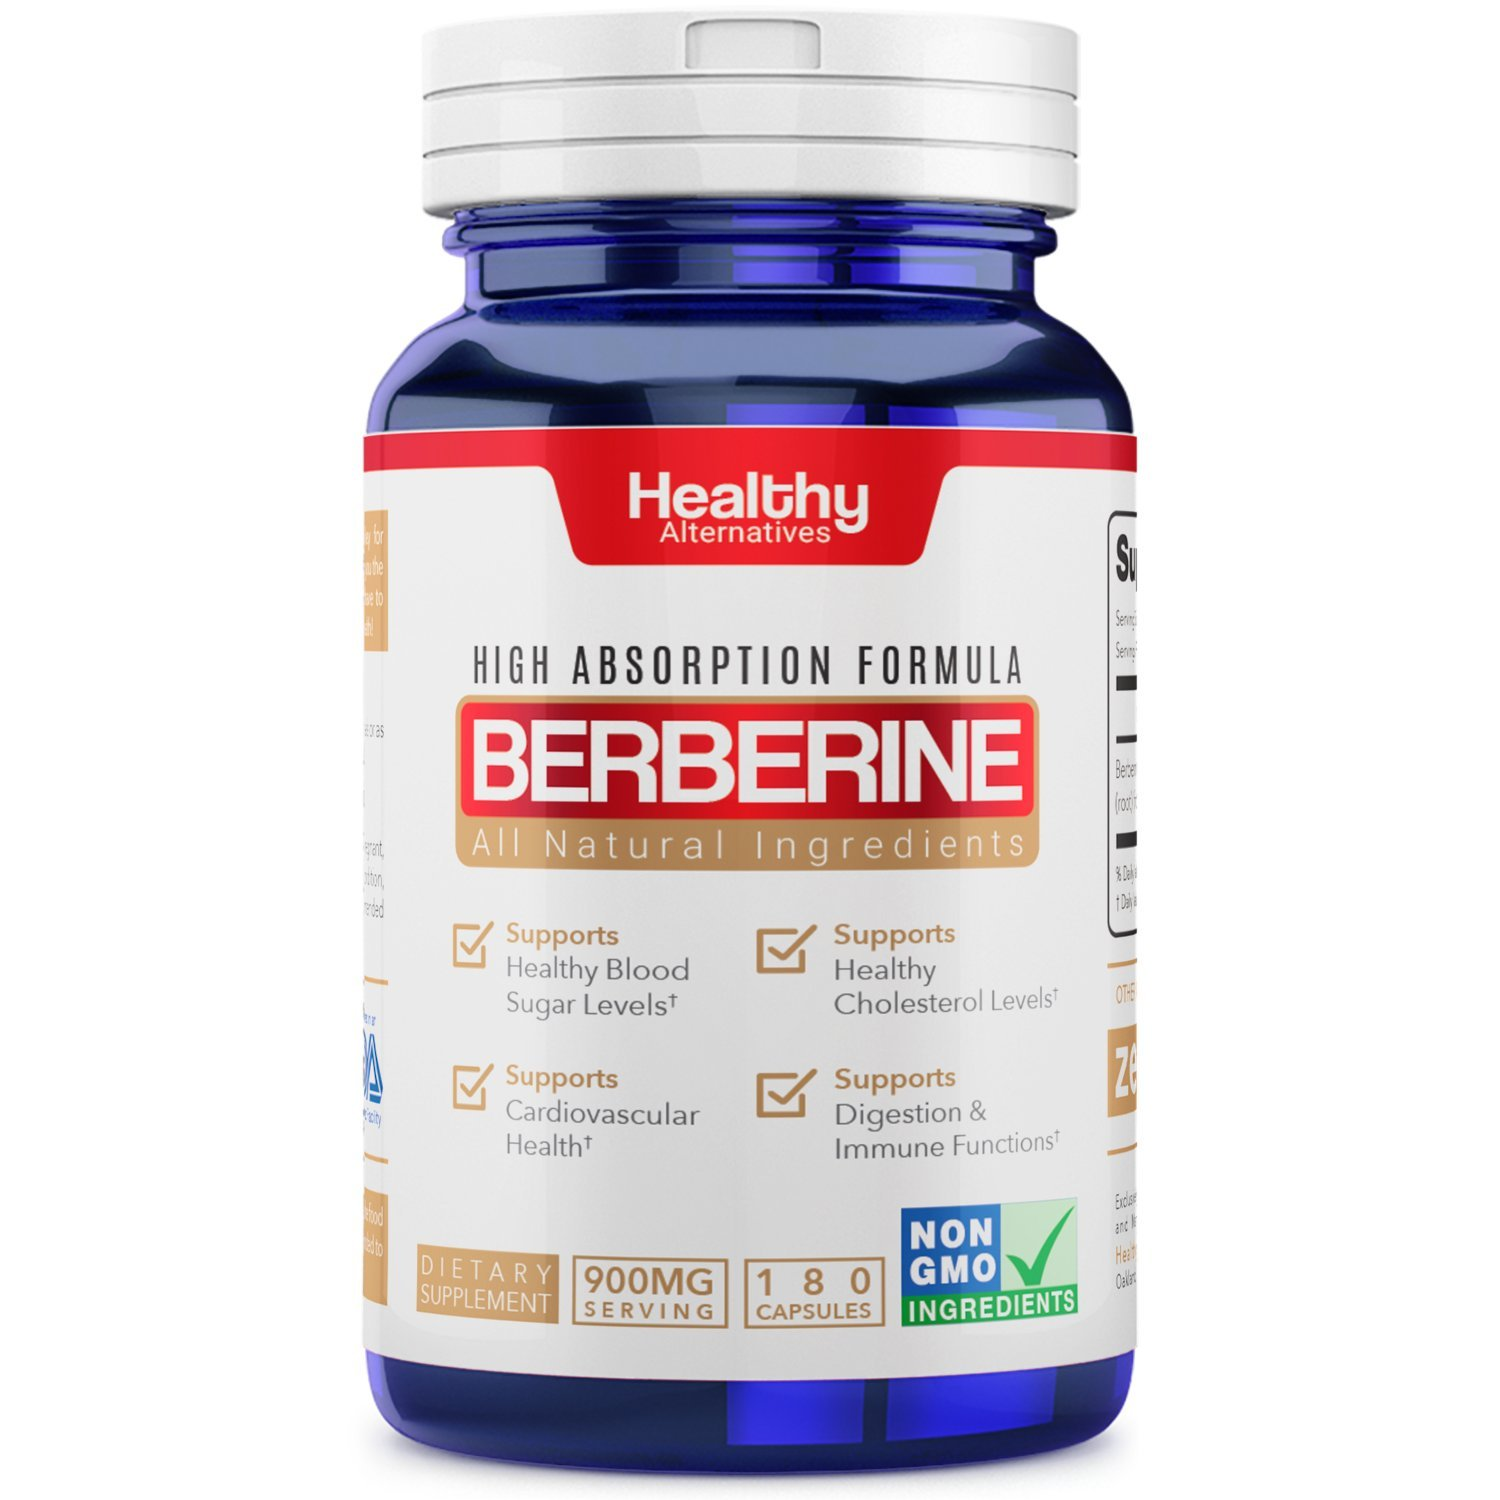 Premium Natural Berberine Supplement 900mg 180 Capsules 3 Month Supply Made in USA Non-GMO - Supports Healthy Blood Sugar Levels & Metabolism, Improves Immunity, Digestion & Cardiovascular Health